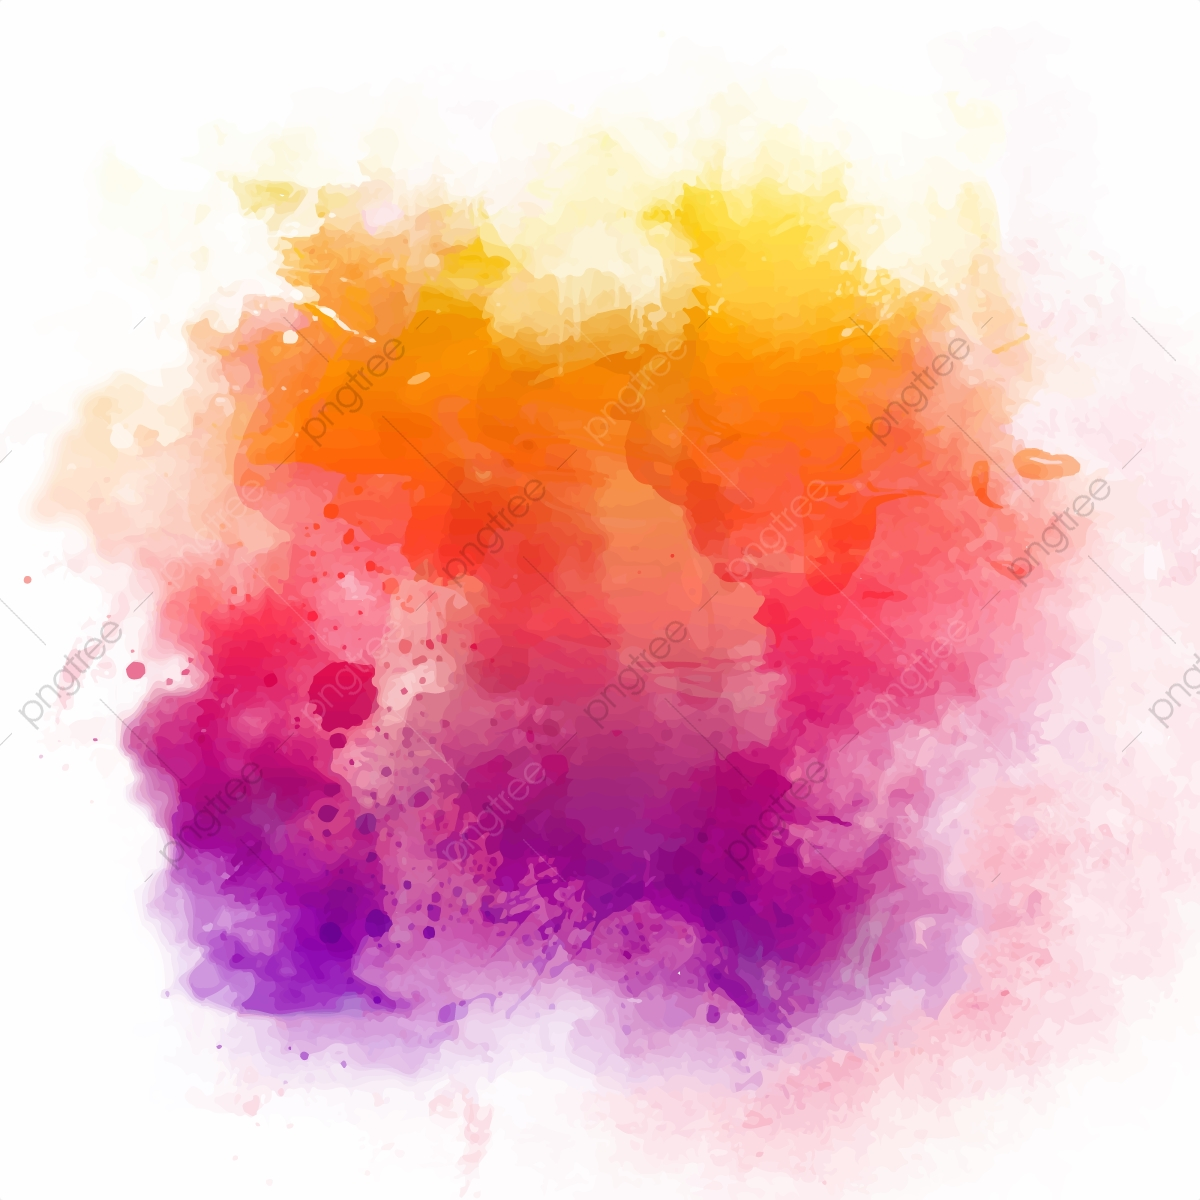 Watercolor Texture Png - Watercolor Vector Background Design, Watercolour, Background ...